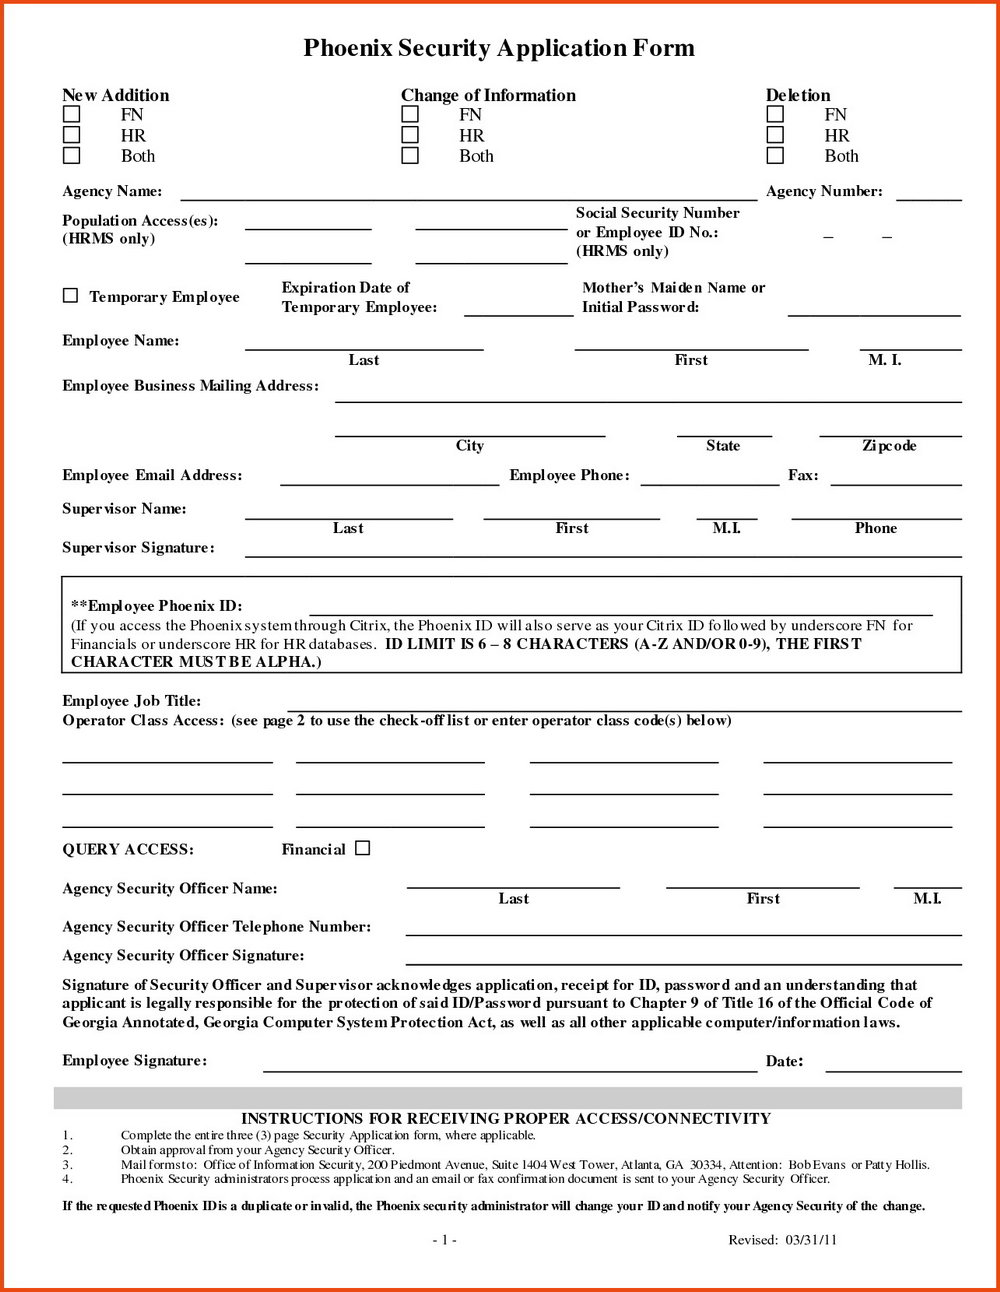 Ssi Application Form Online